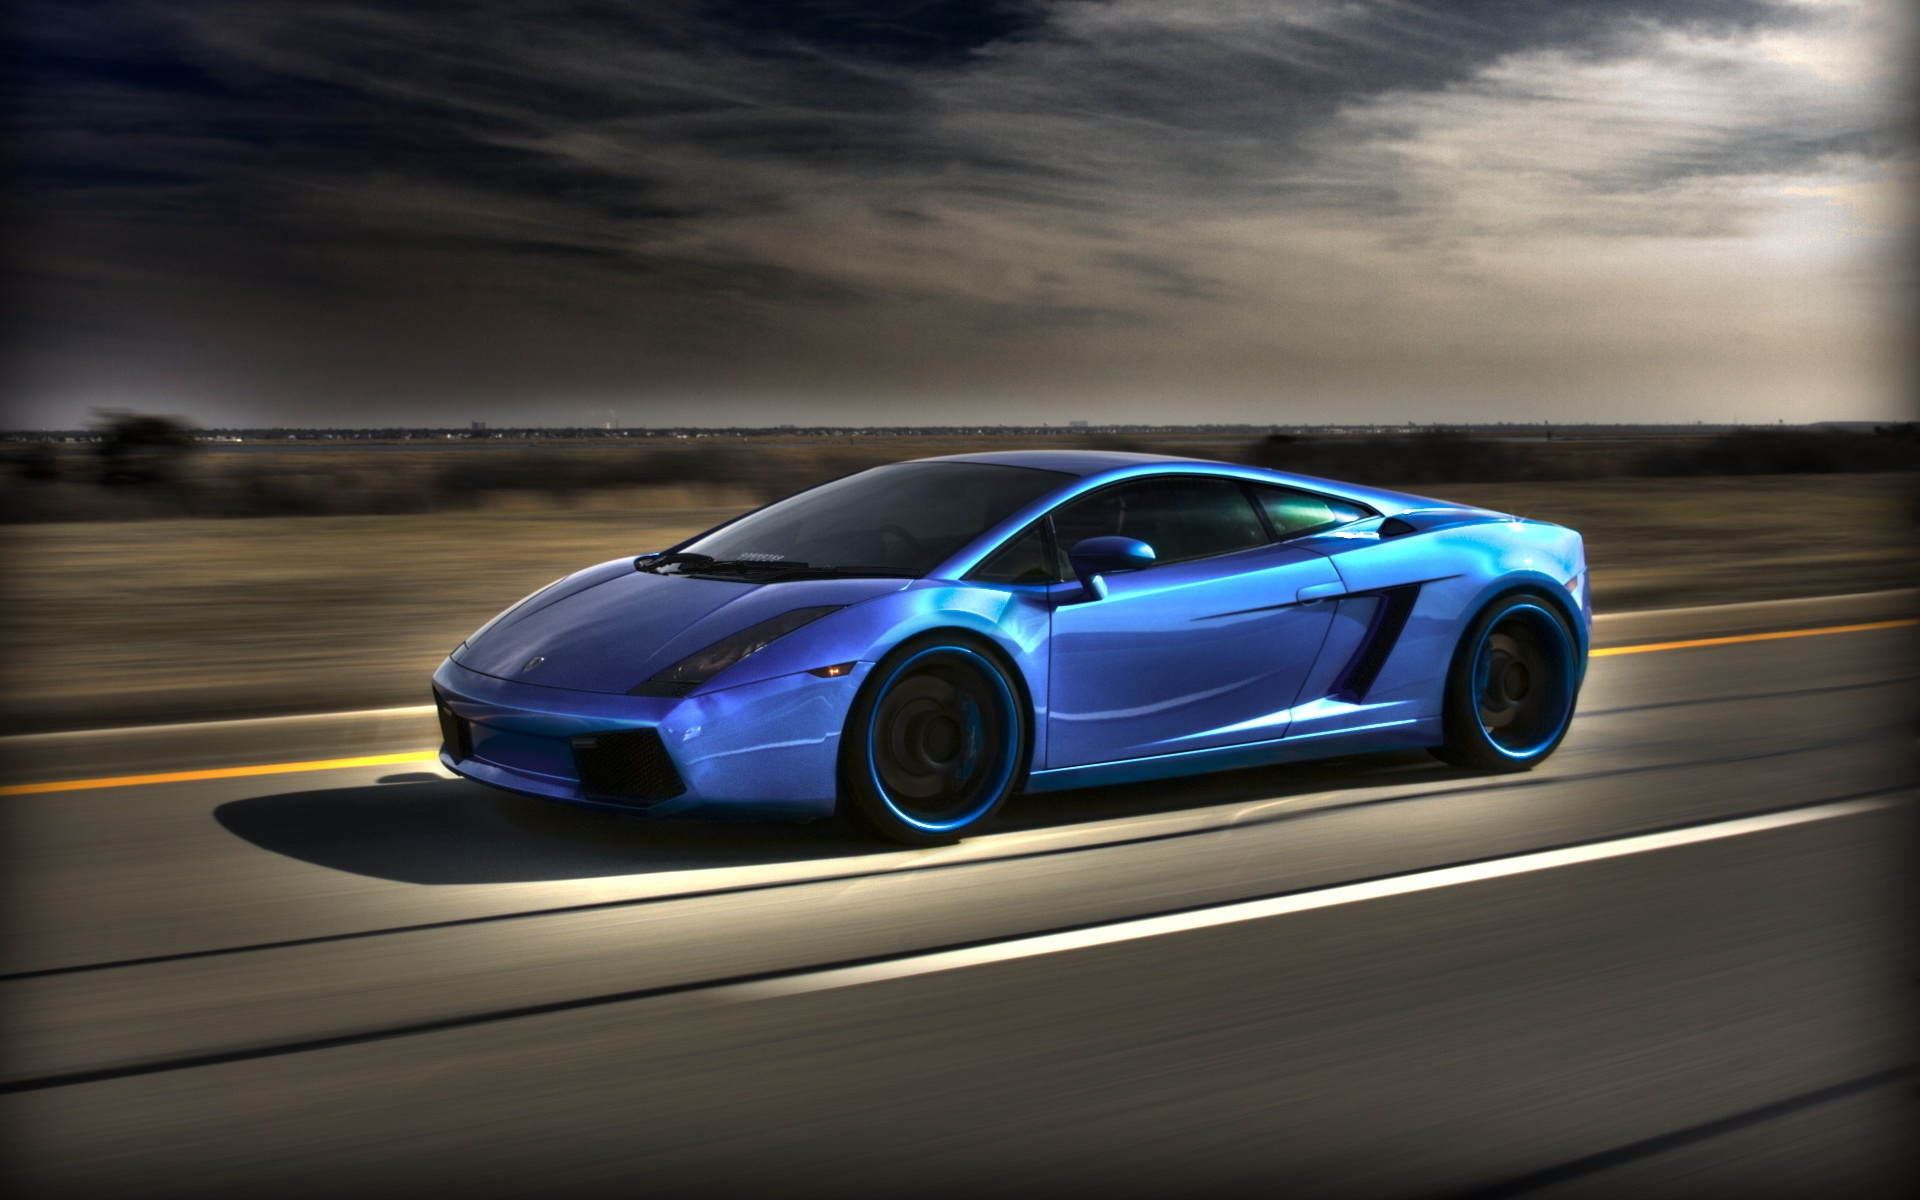 blue lamborghini gallardo wallpaper Lamborghini Gallardo Blue Wallpapers | HD Wallpapers